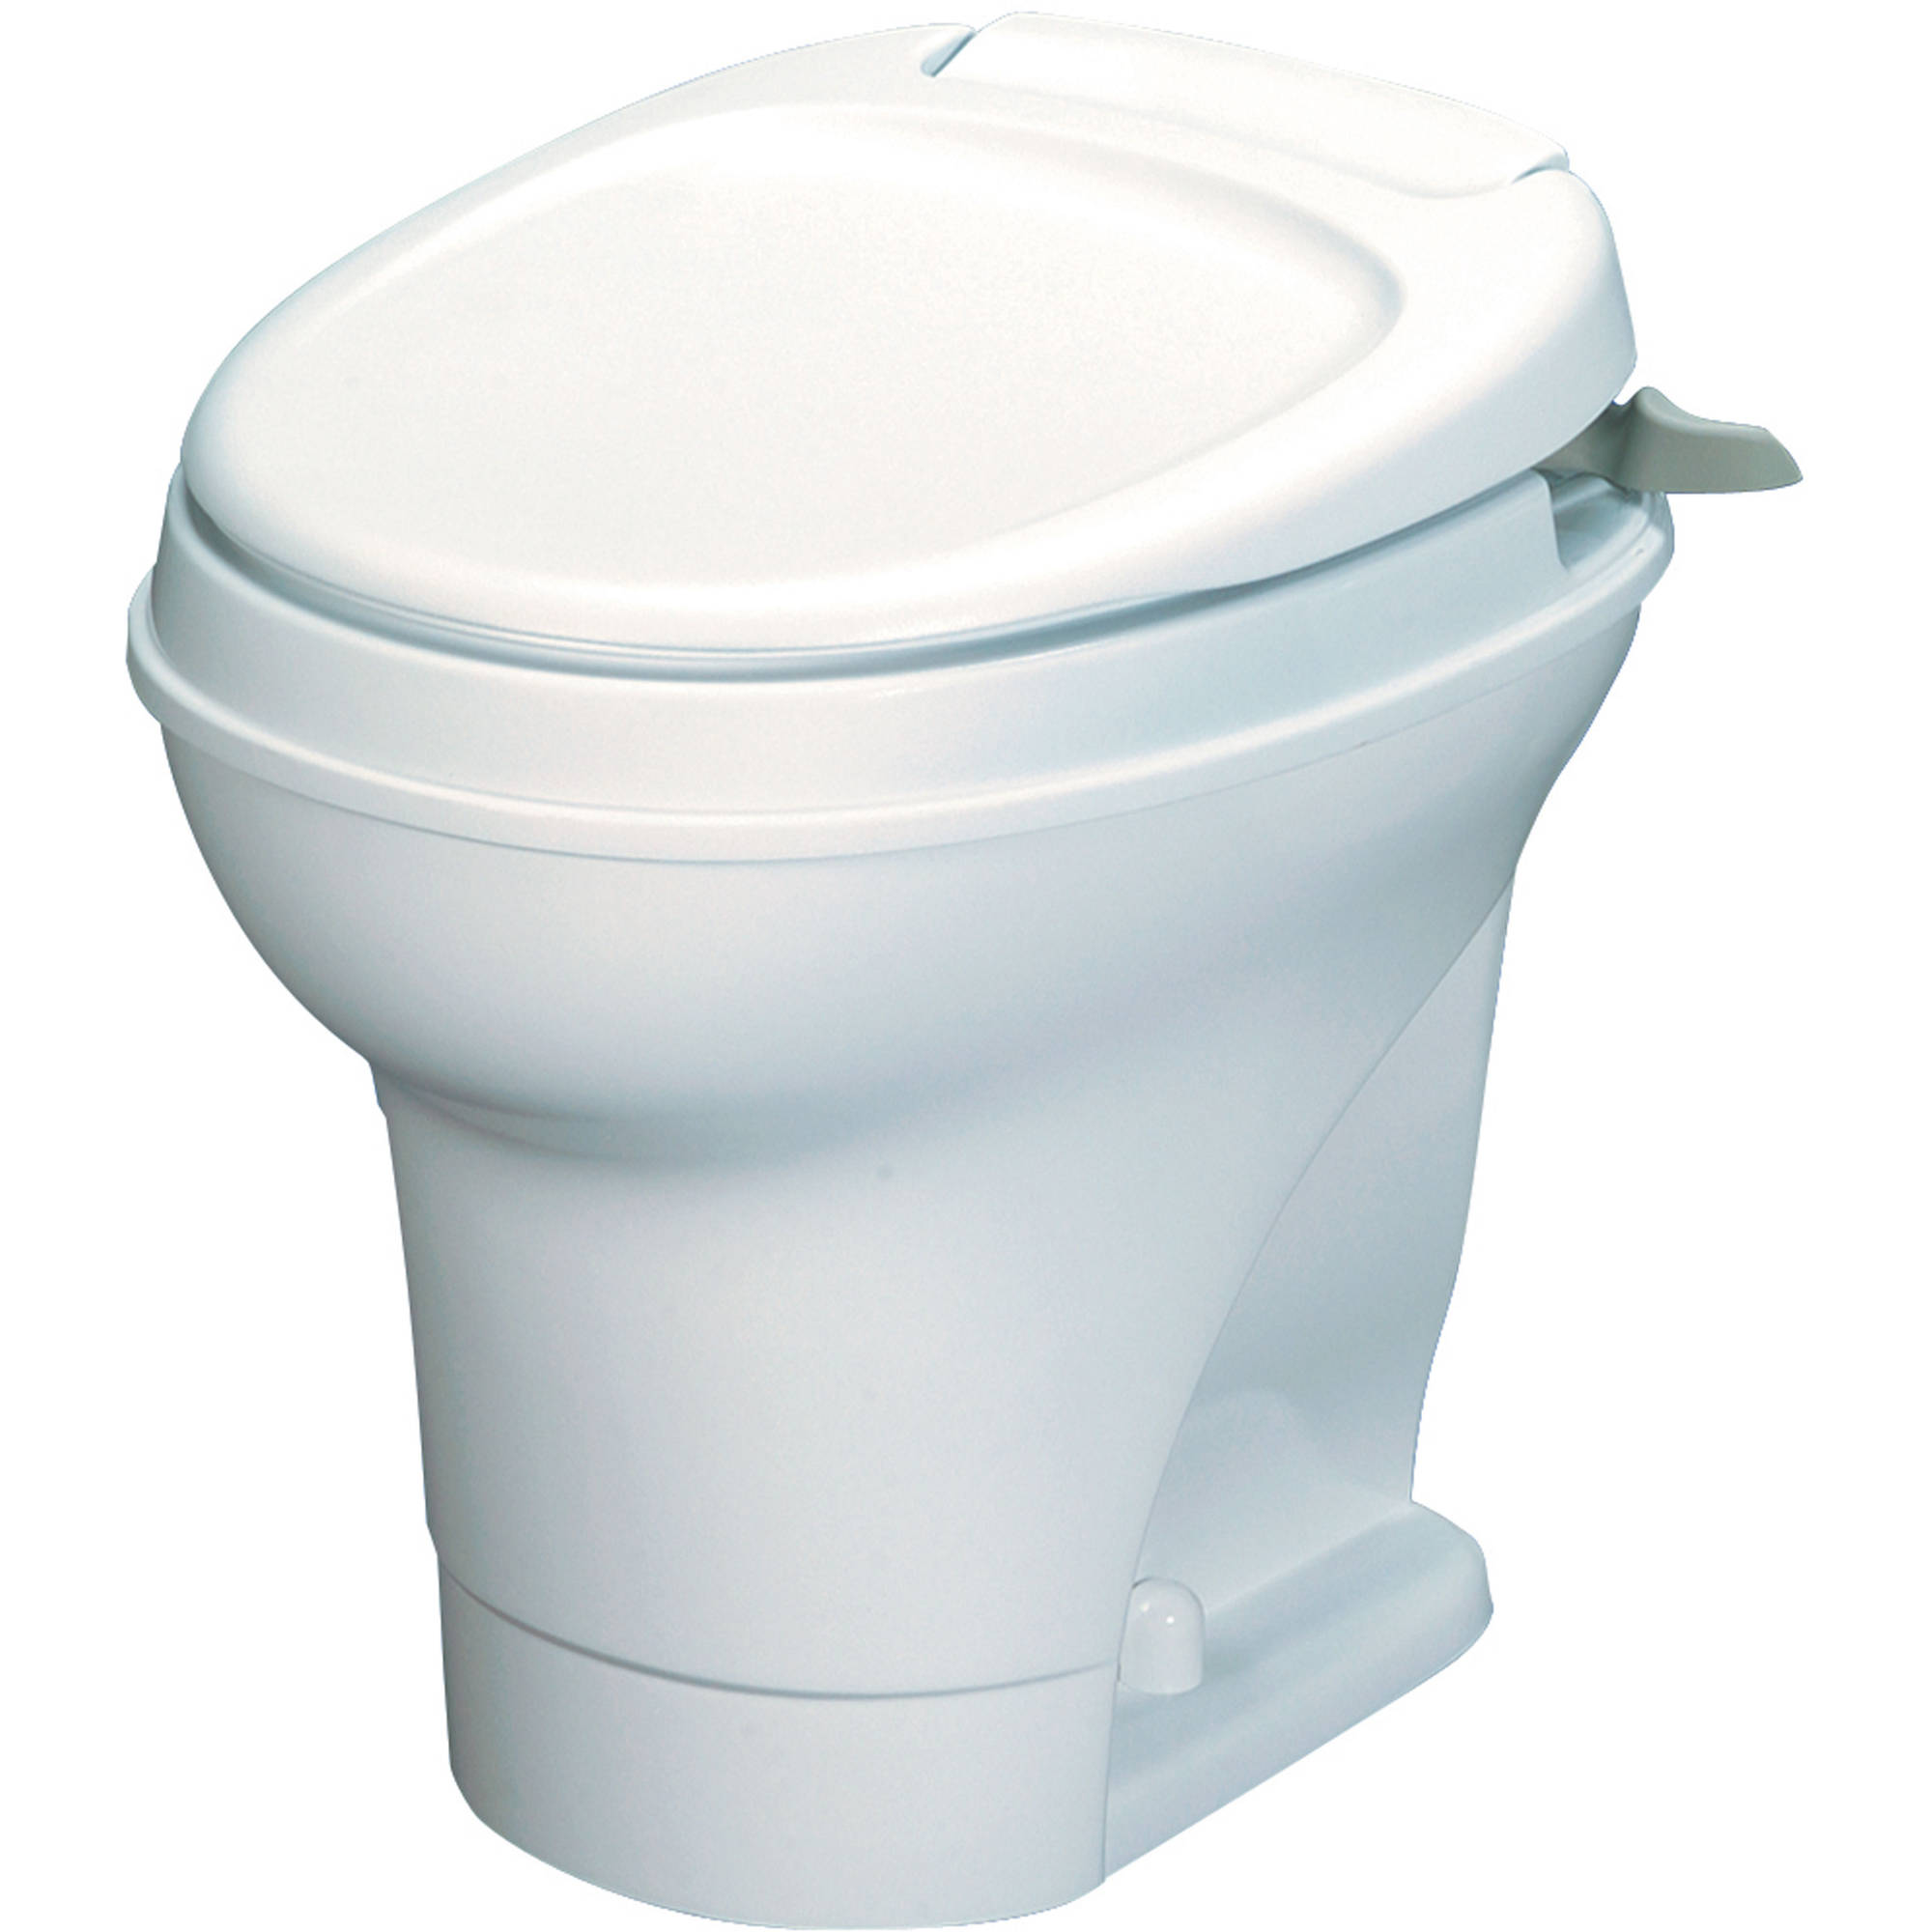 See More Hot 100 One Piece Toilets